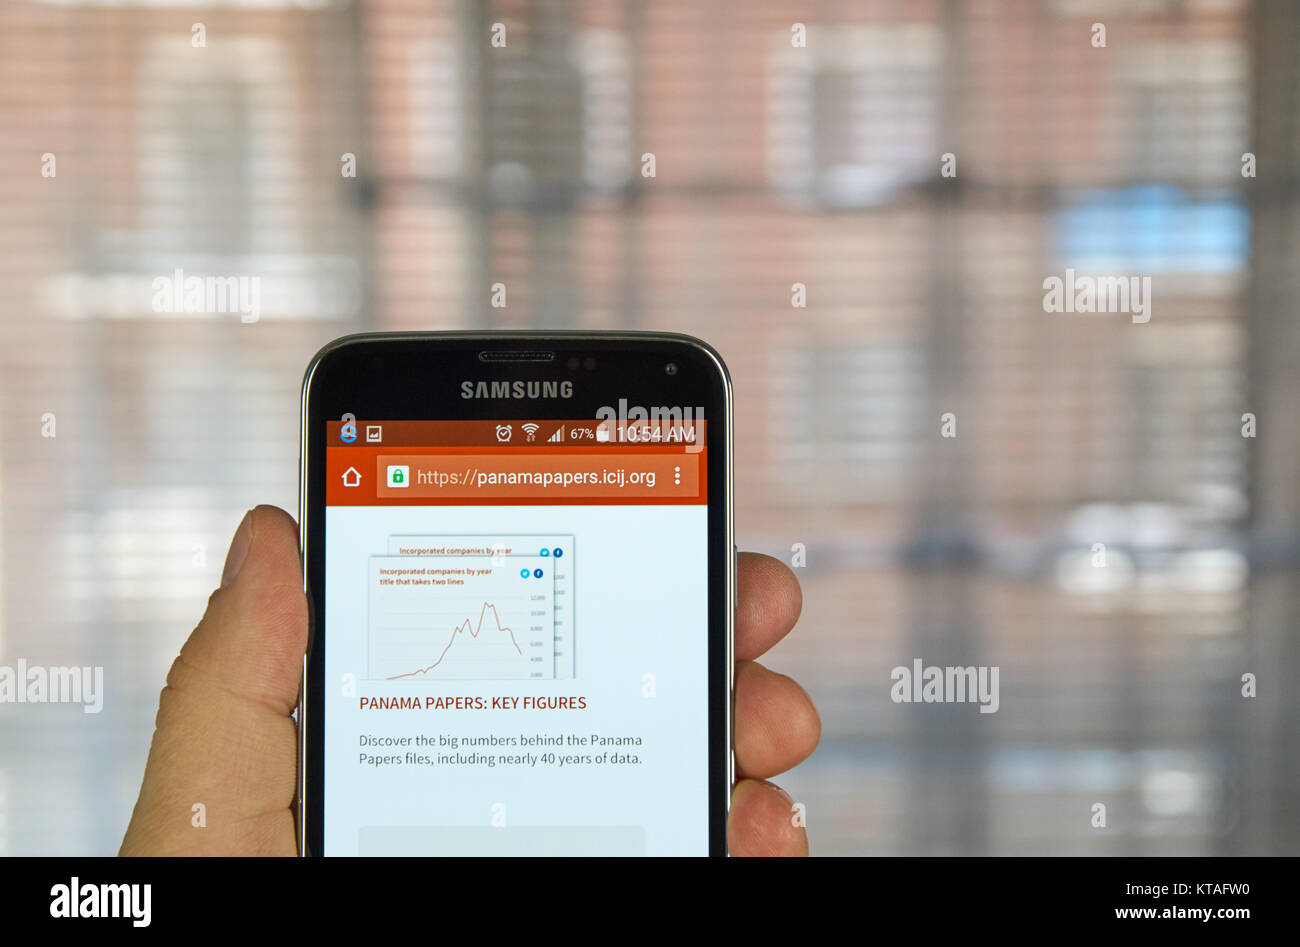 MONTREAL, CANADA - APRIL 5, 2016 : ICIJ web page on mobile phone. ICIJ is International Consortium of Investigative - Stock Image